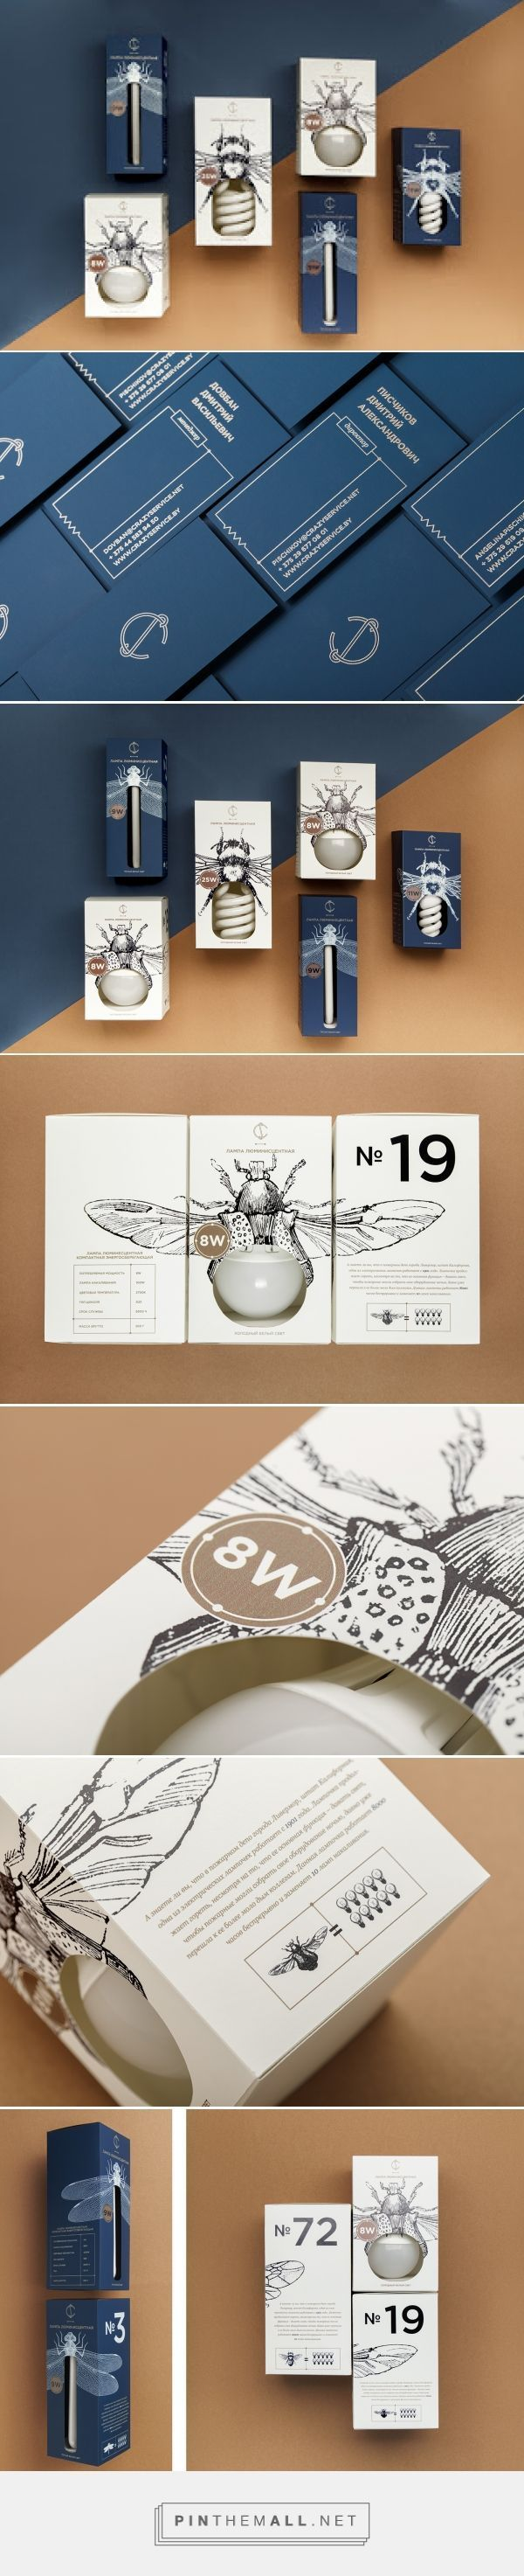 Packaging Design | Bug lightbulb packaging!